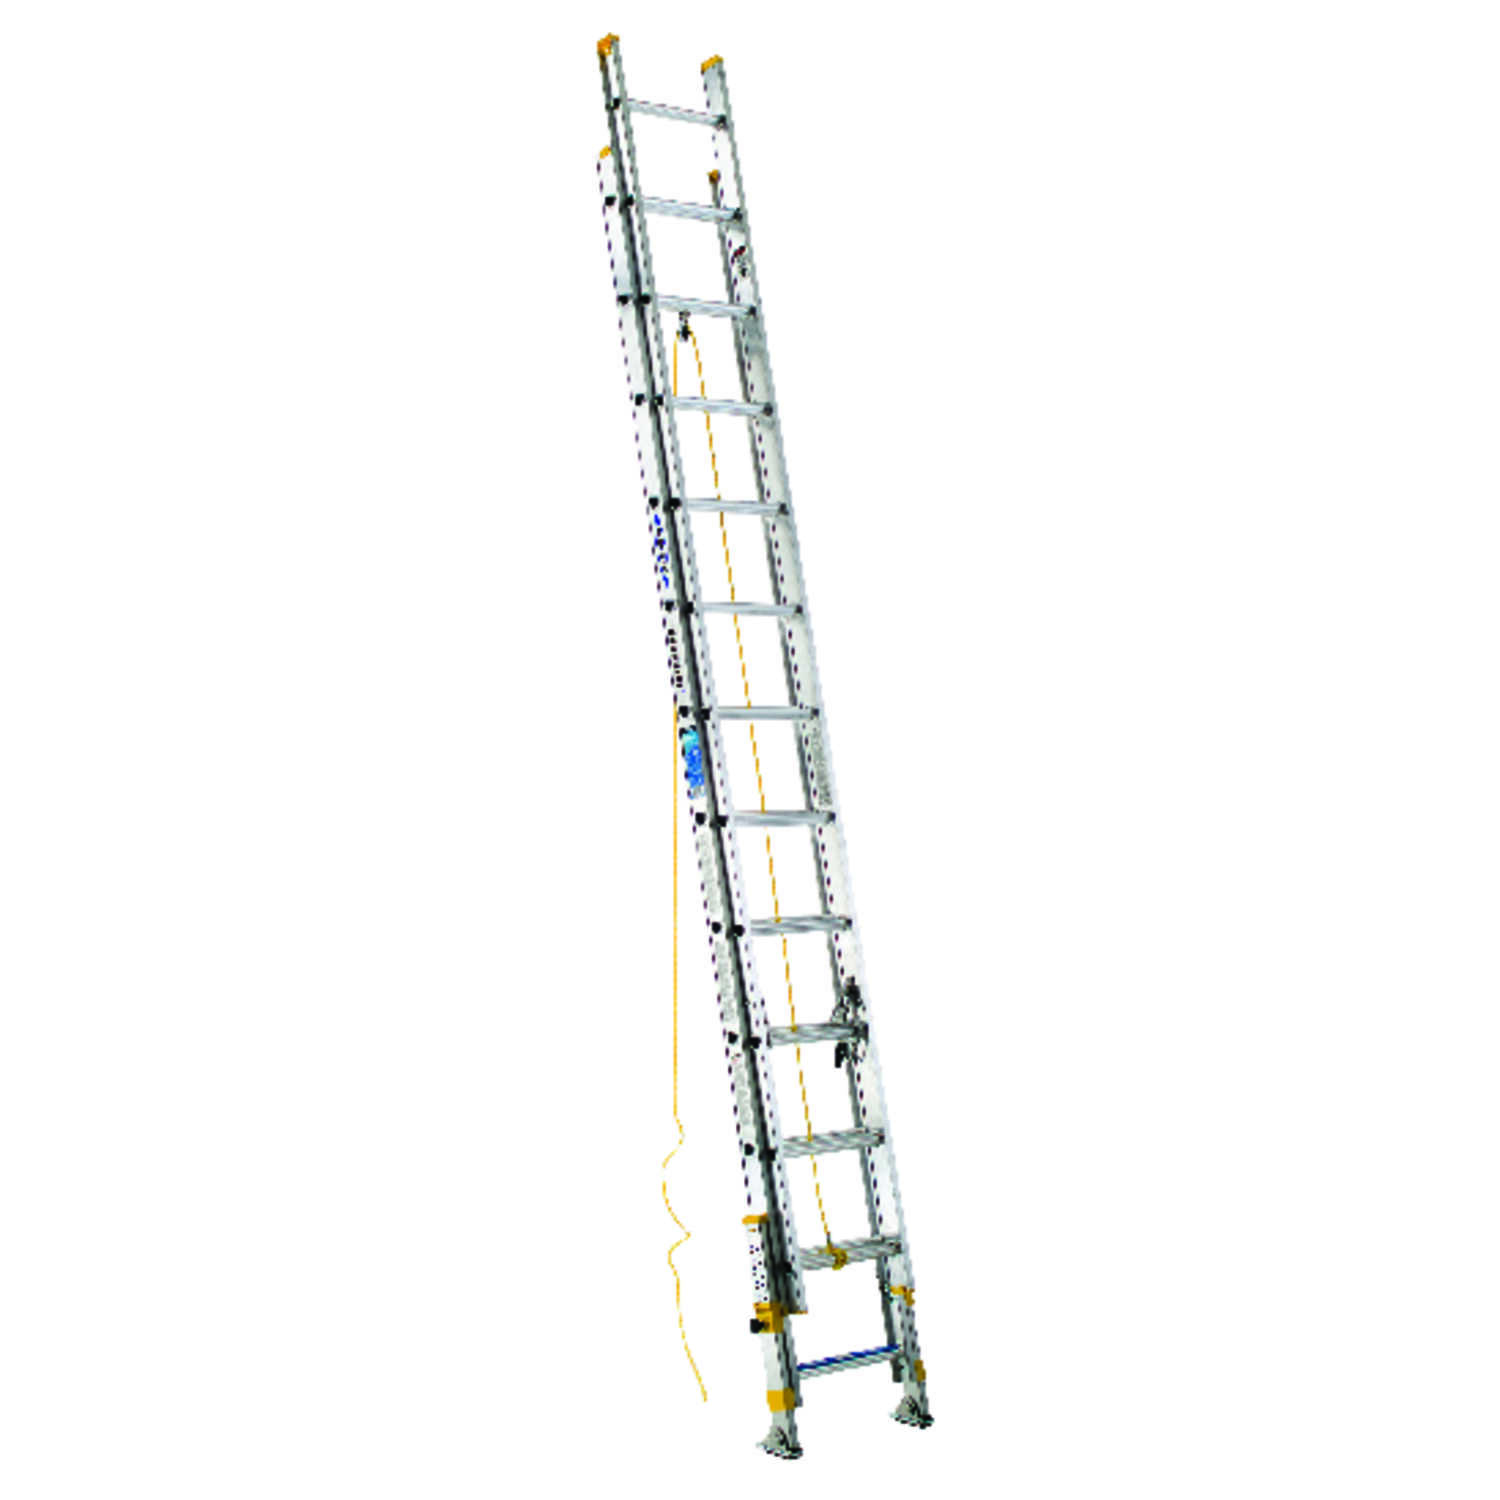 Werner  24 ft. H x 20.75 in. W Extension Ladder  Aluminum  250 lb. Type I